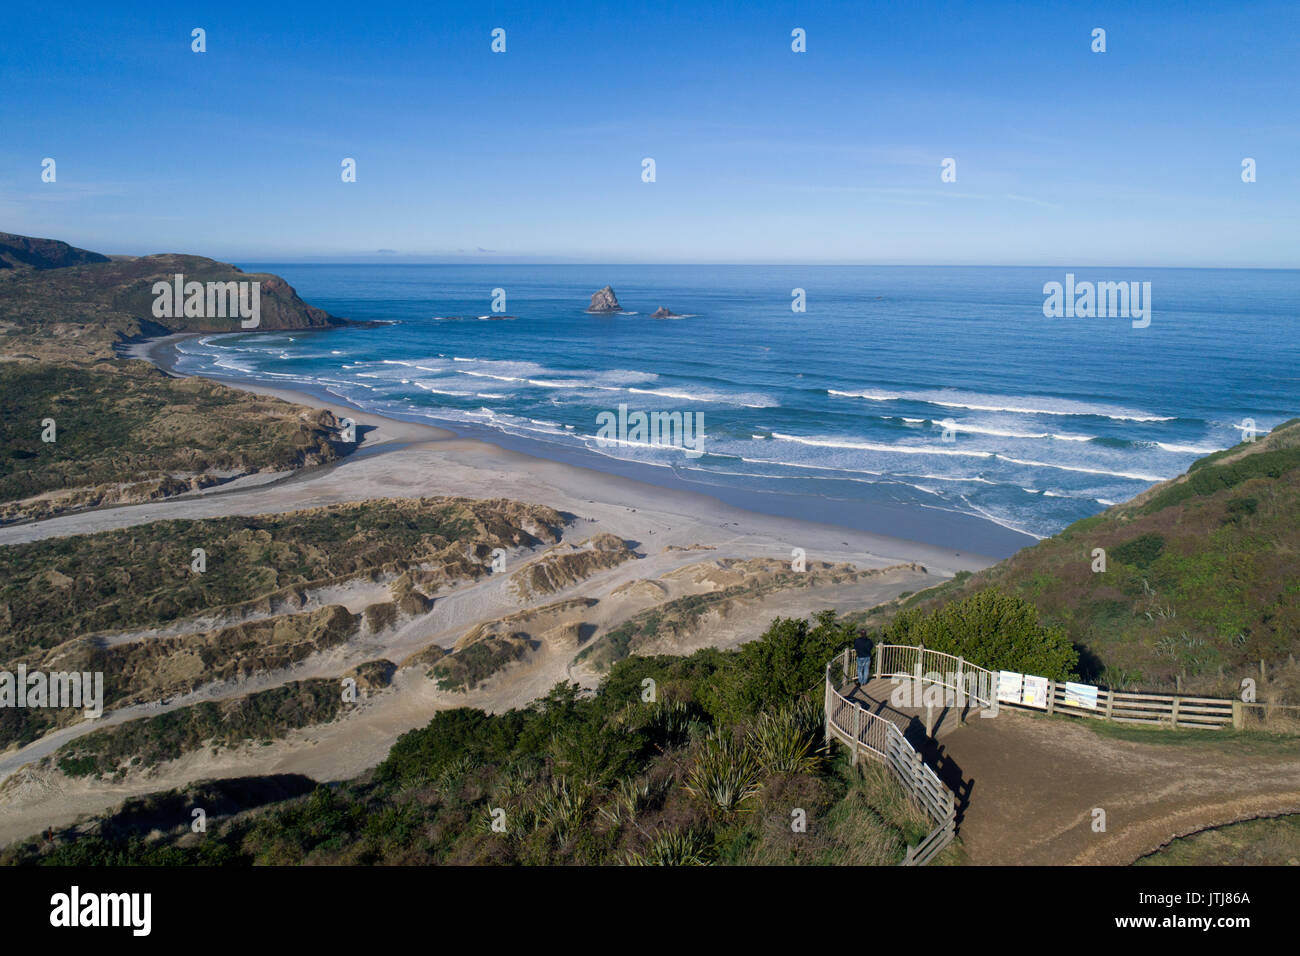 Lookout over Sandfly Bay, Otago Peninsula, Dunedin, Otago, South Island, New Zealand - drone aerial - Stock Image